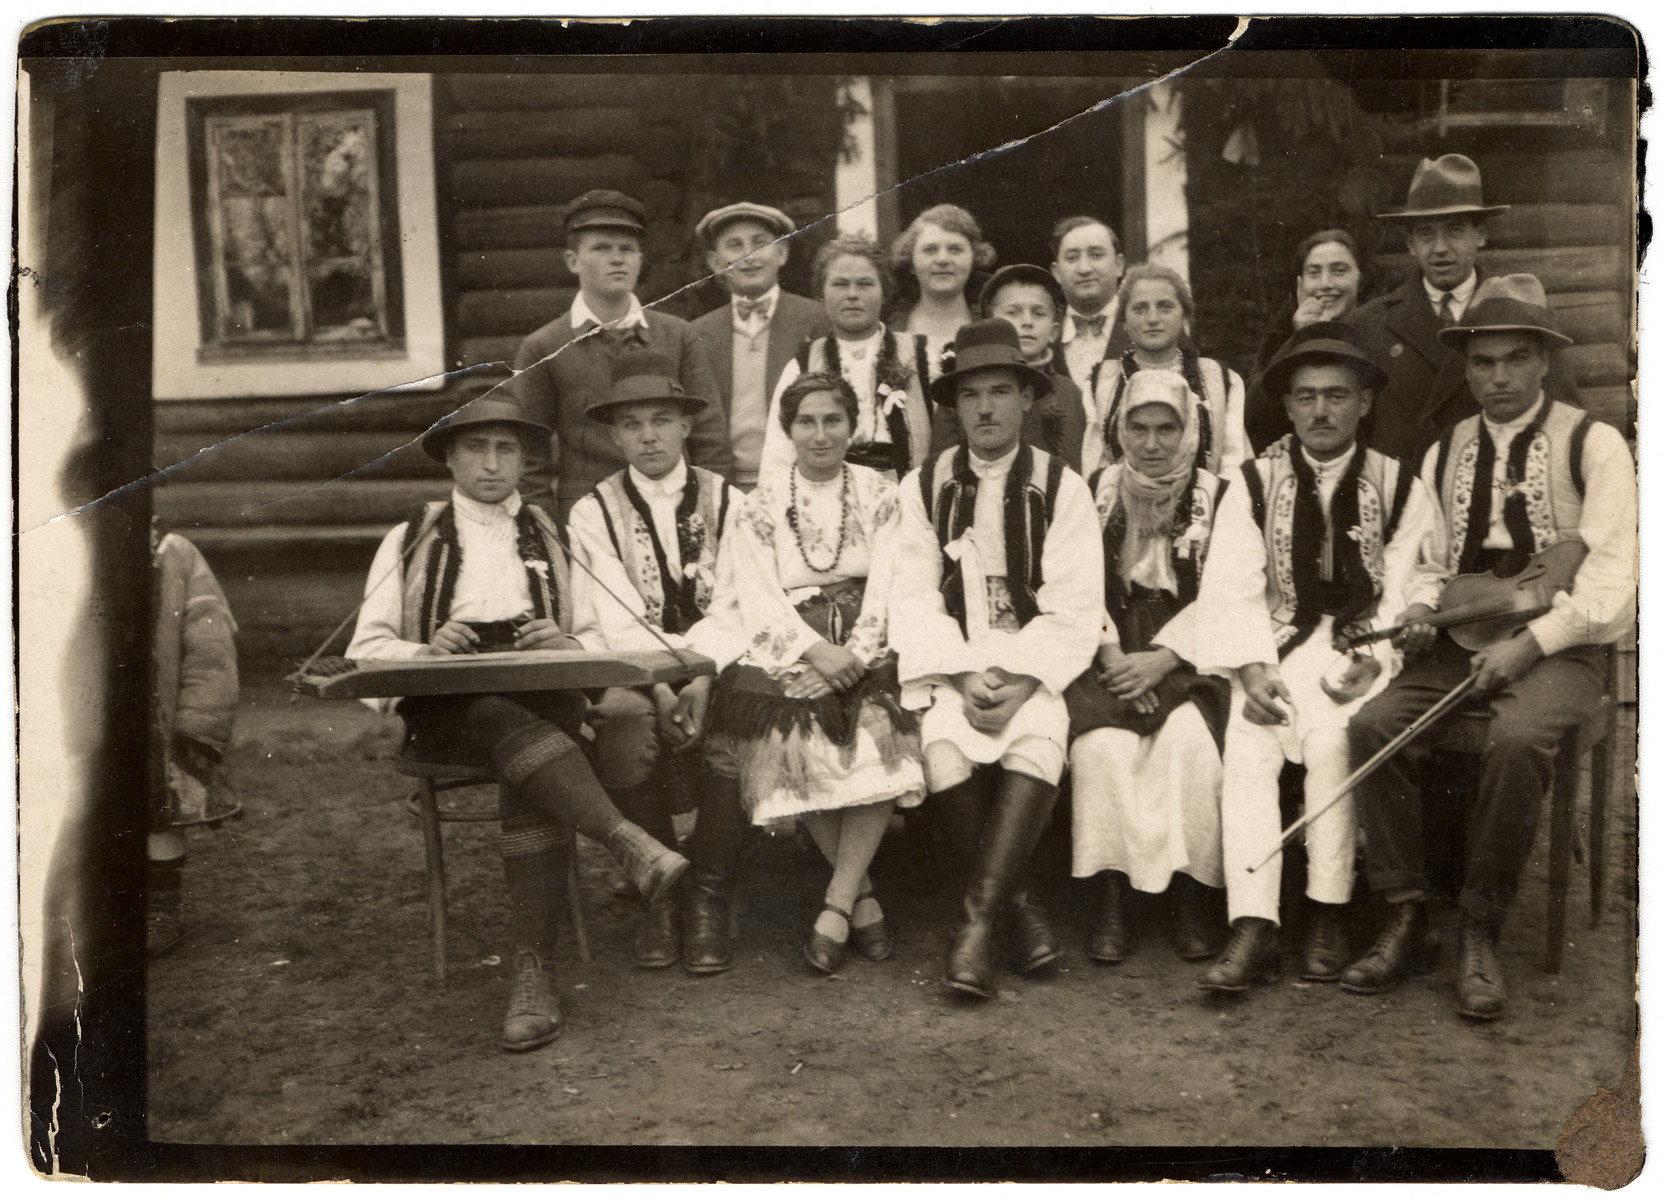 Members of the Lifschitz family pose with a group of Romanian peasants wearing embroidered vests that Avraham David Litschitz wove in his textile shop.  Pictured in the back row are Avraham David Lifschitz (second from left), Joseph Sperling (Avraham David's brother-in-law visiting from America, center) and Avraham David's sister and her husband, Esther and Mendel Mechlowitz (far right).